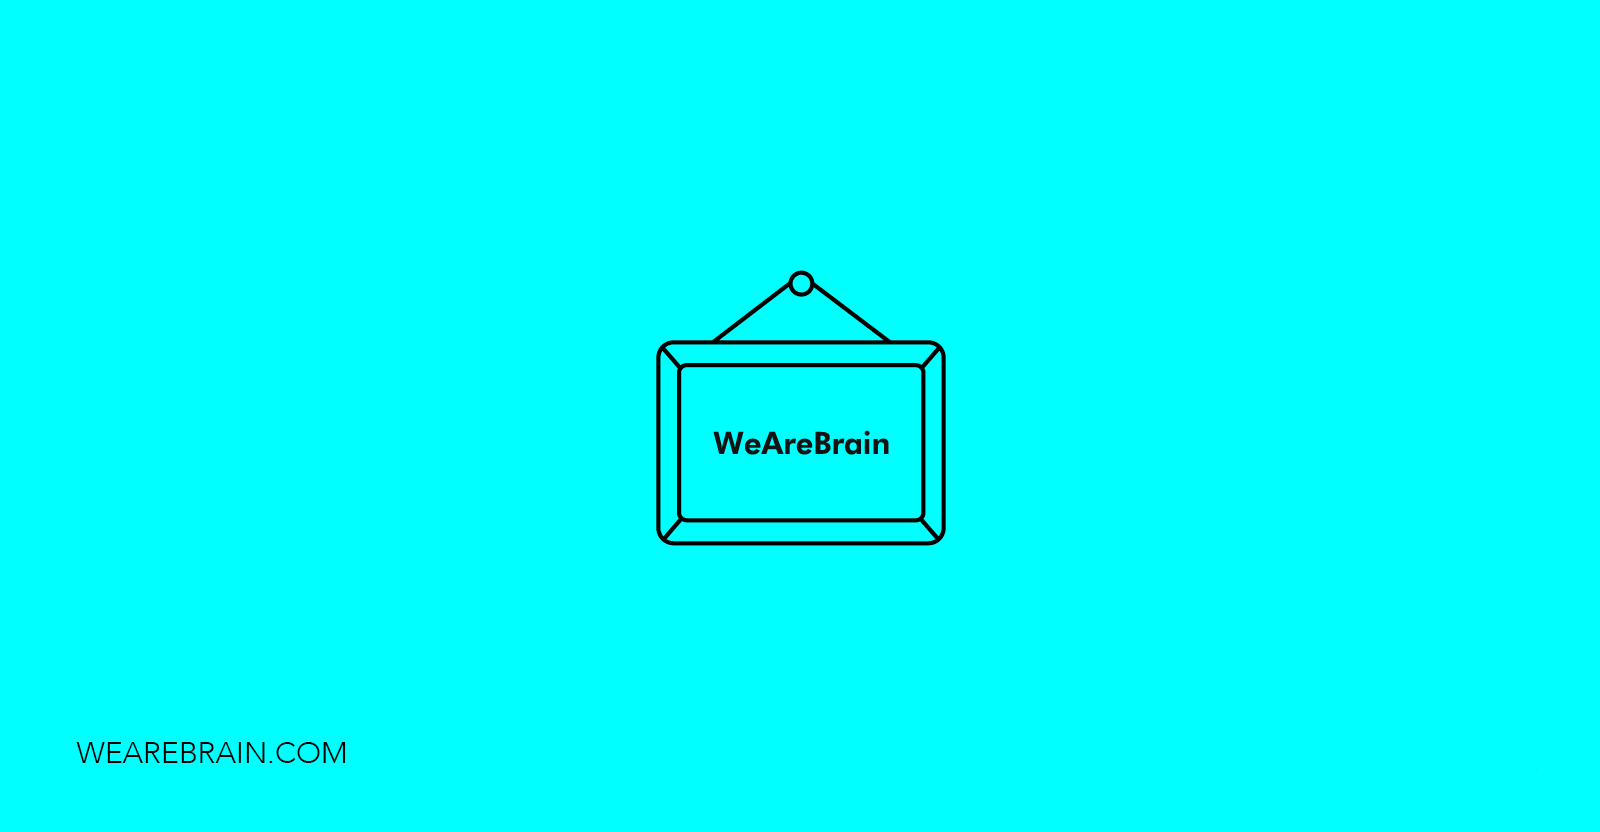 icon if a hanging sign saying 'WeAreBrain'